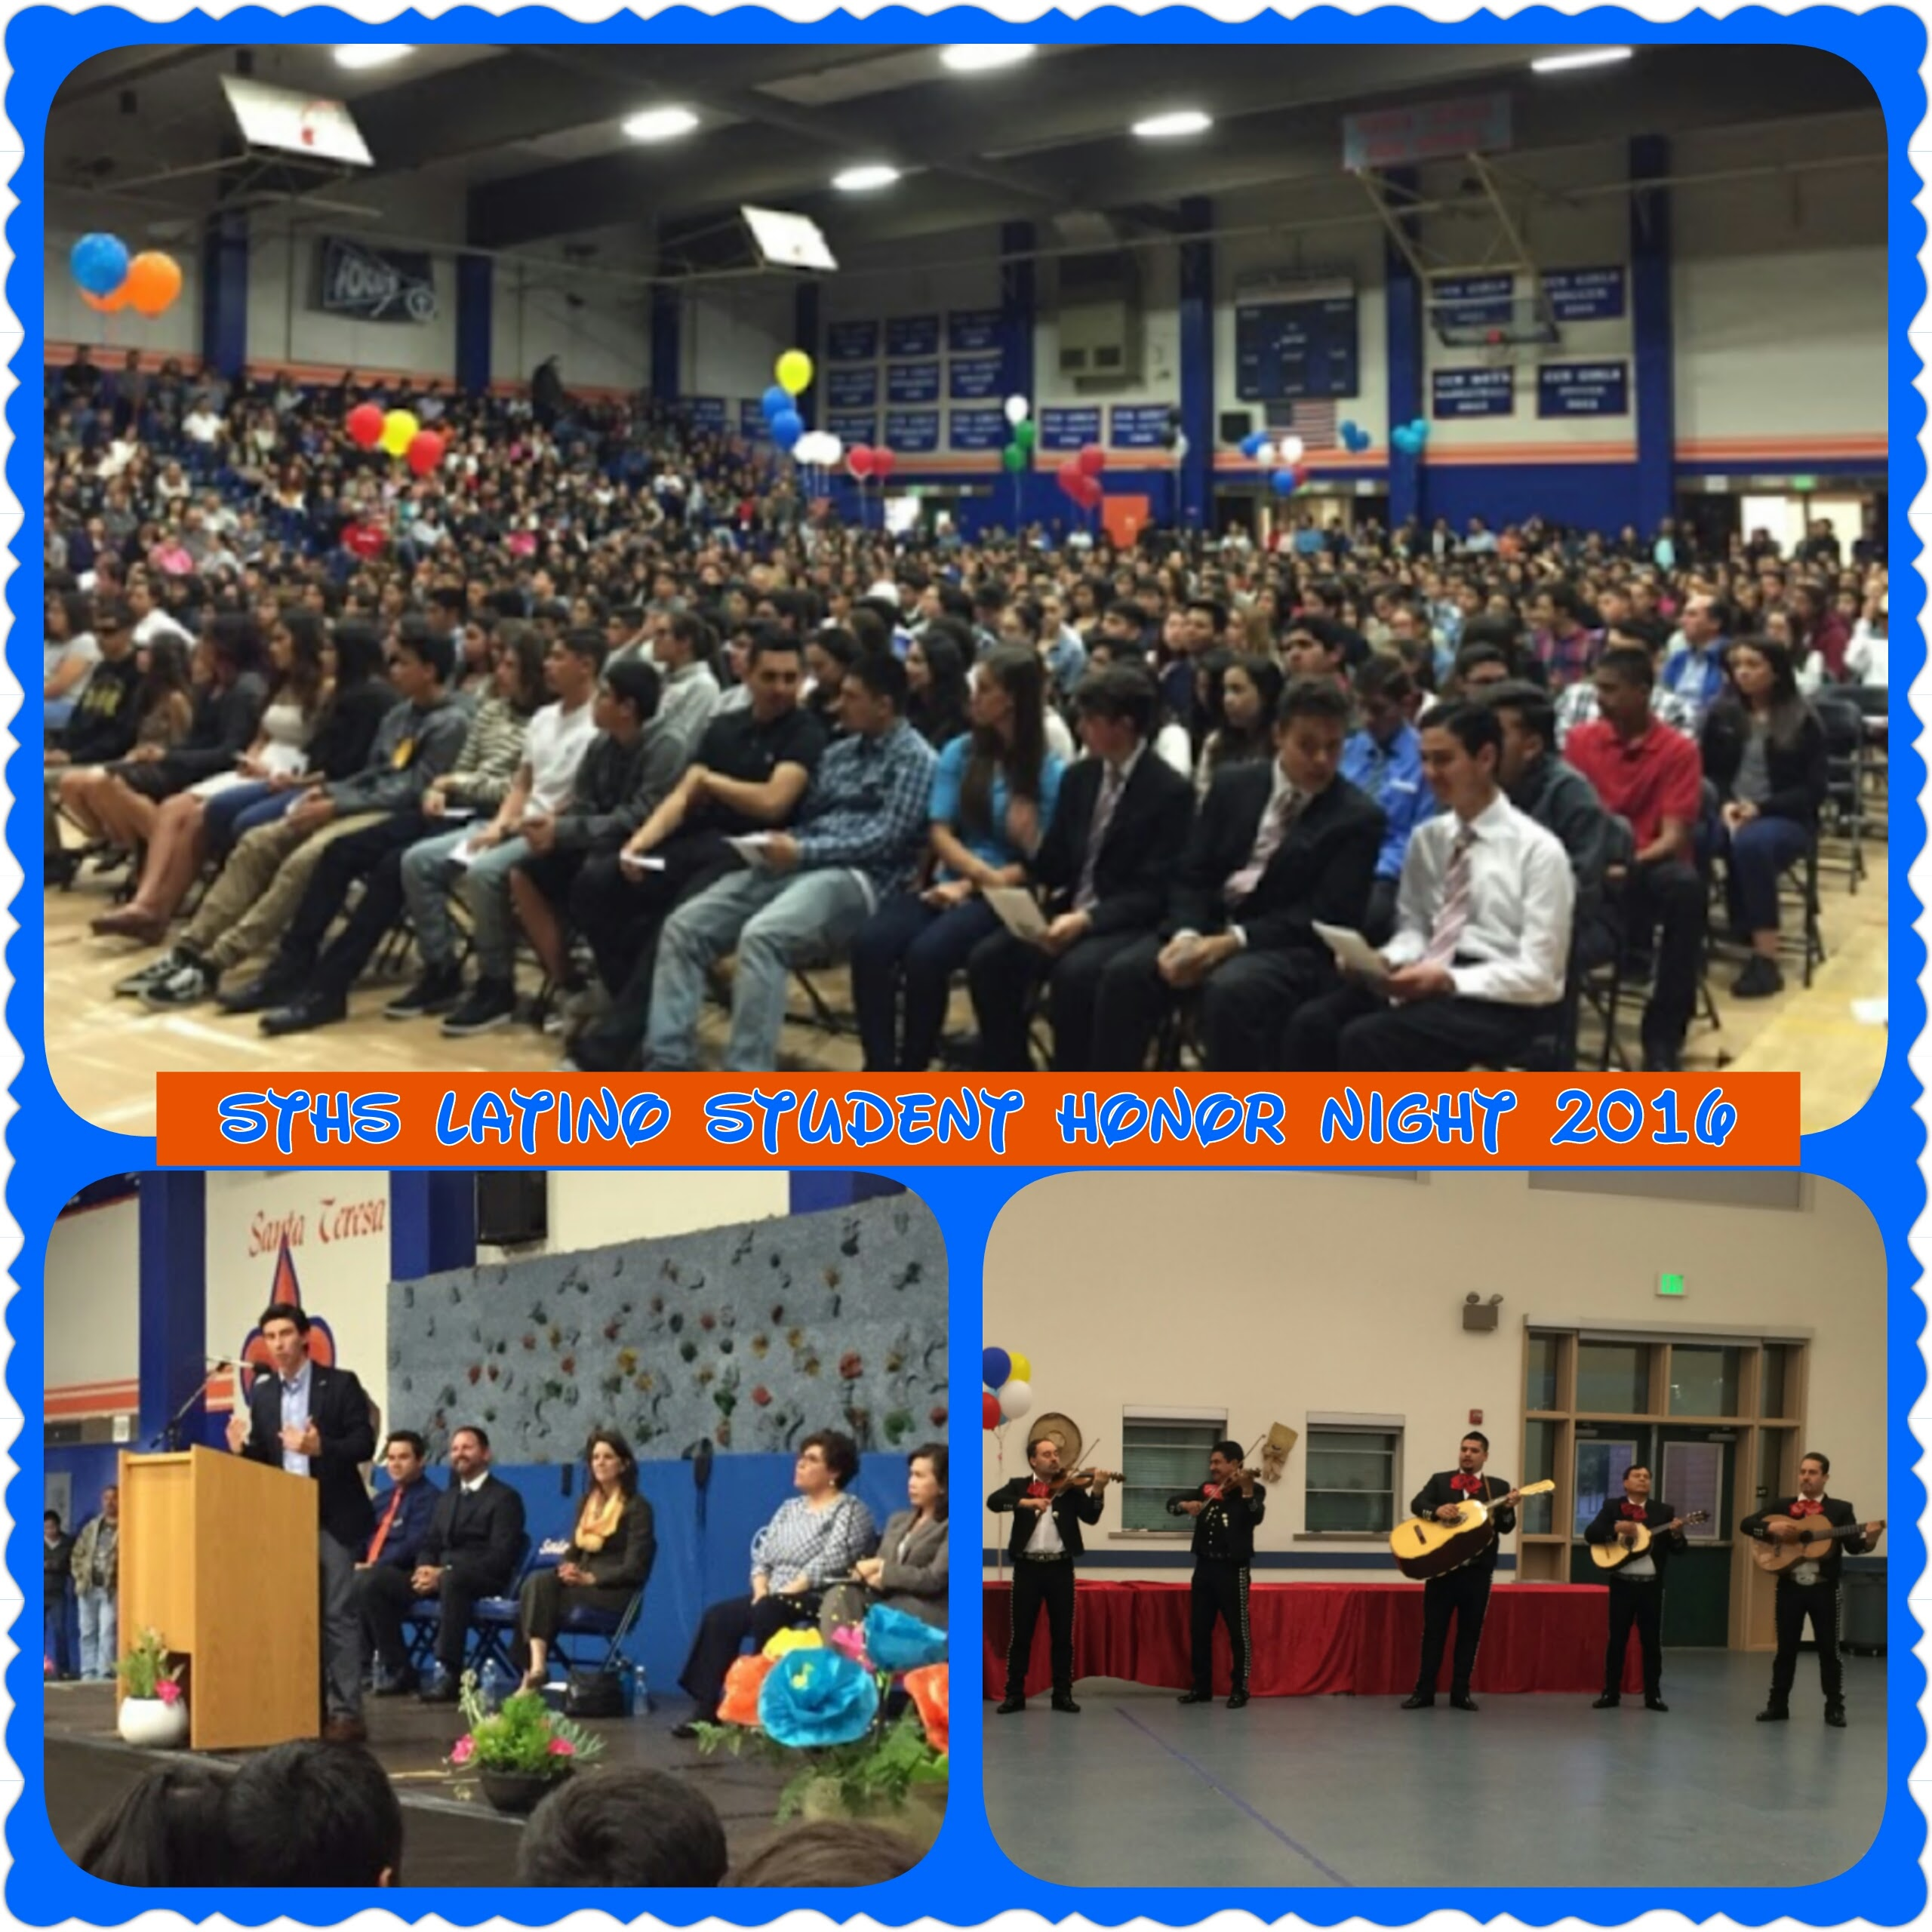 STHS Latino Student Honor Night 2016